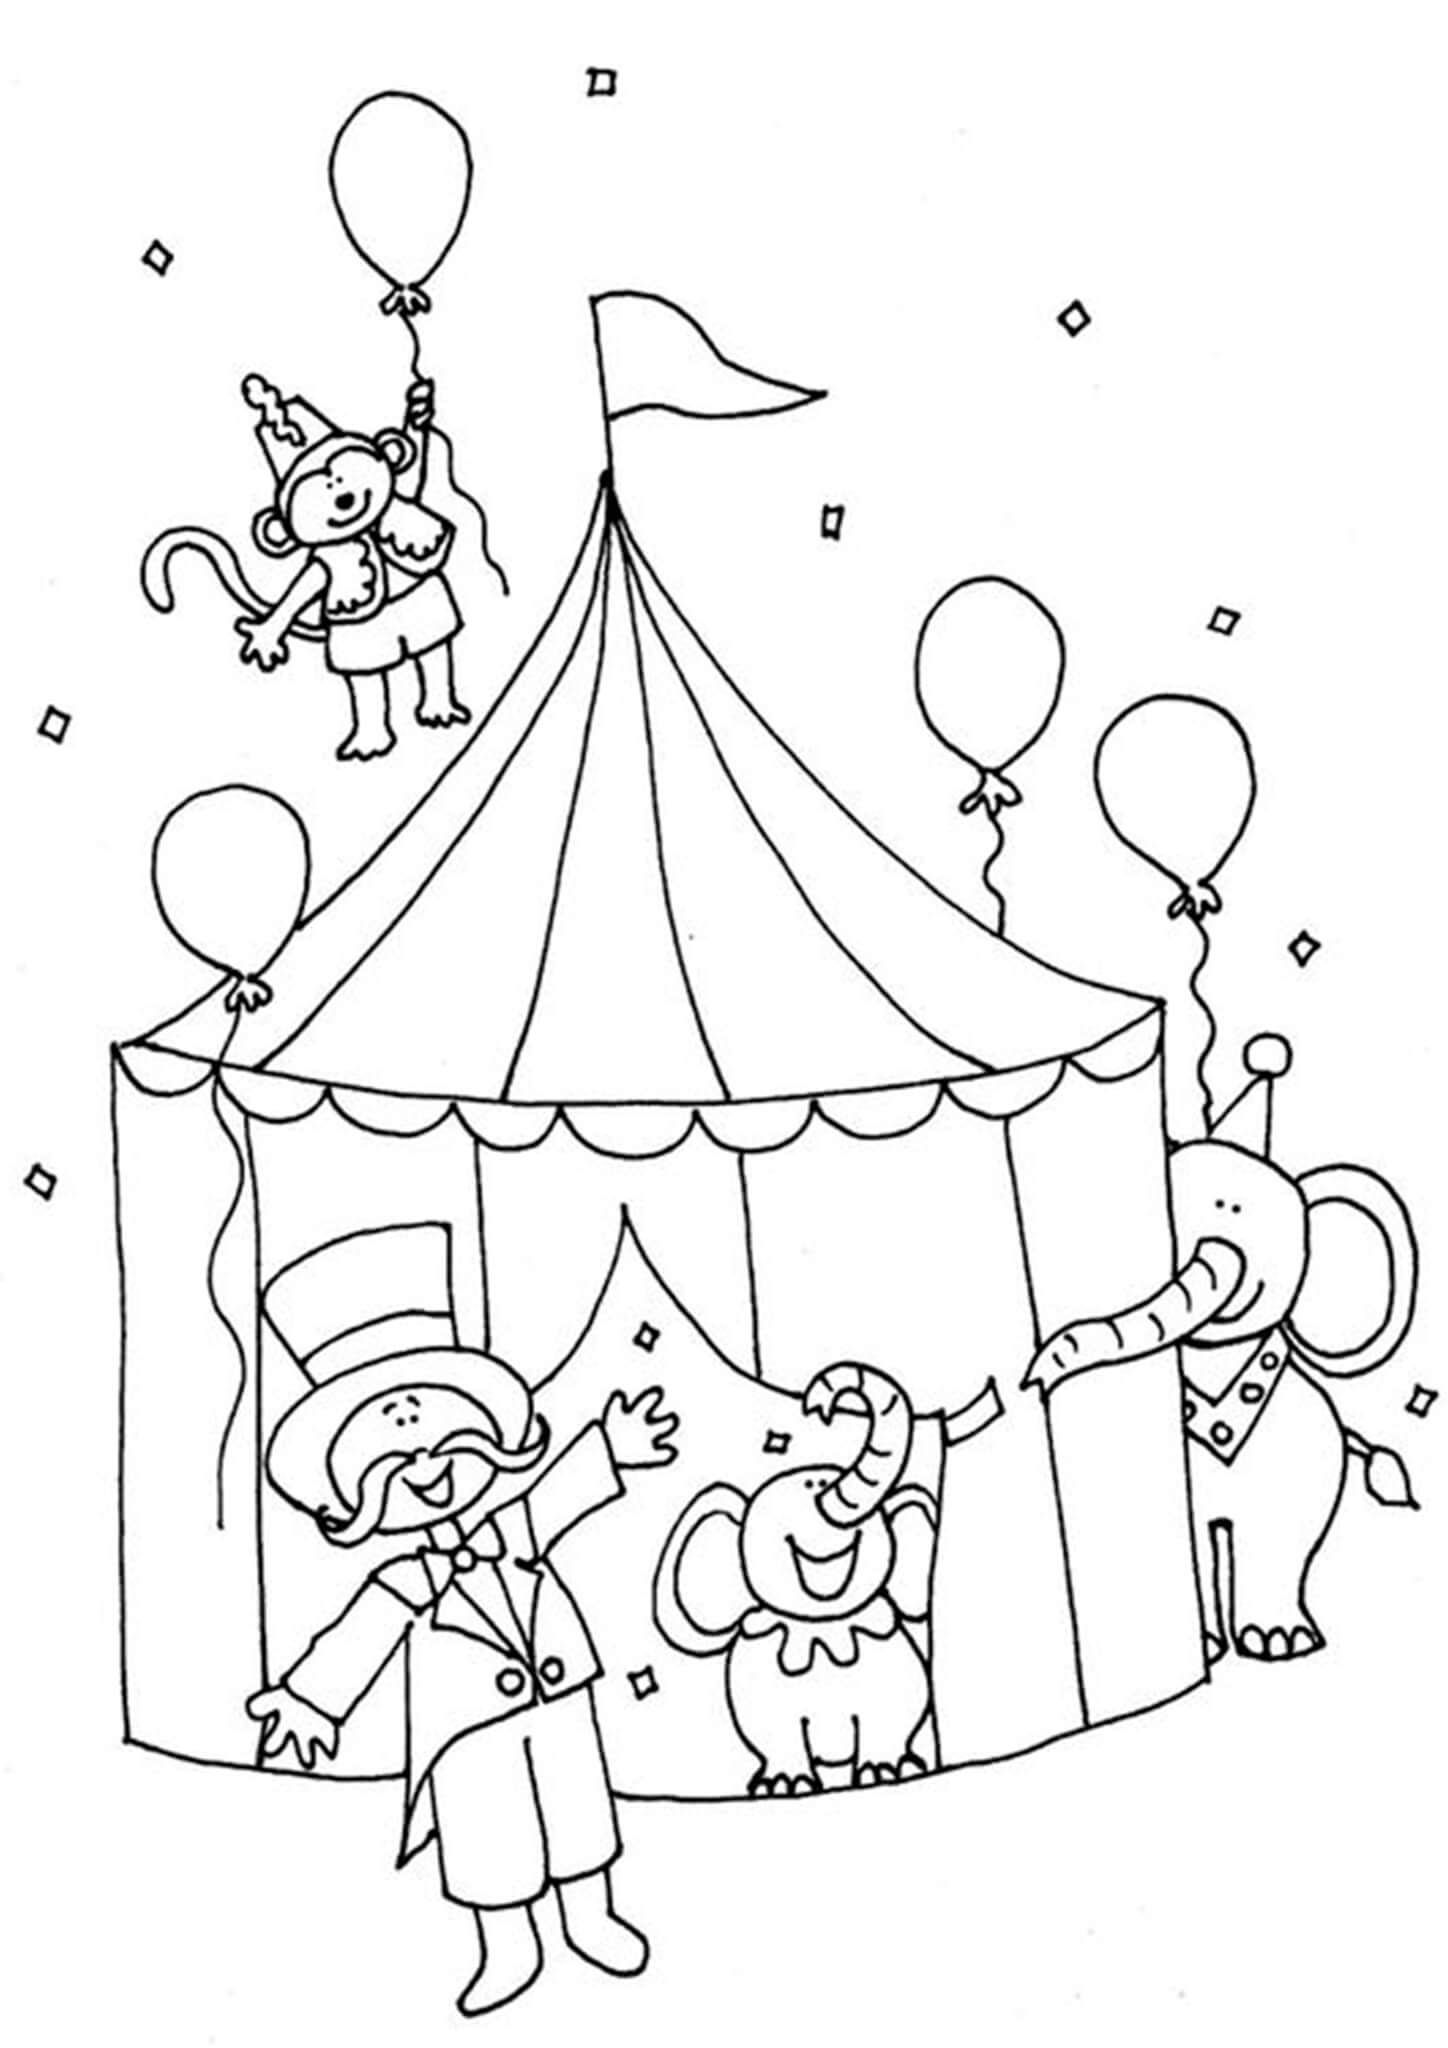 Free Easy To Print Circus Coloring Pages In 2021 Circus Theme Crafts Coloring Pages Circus Crafts